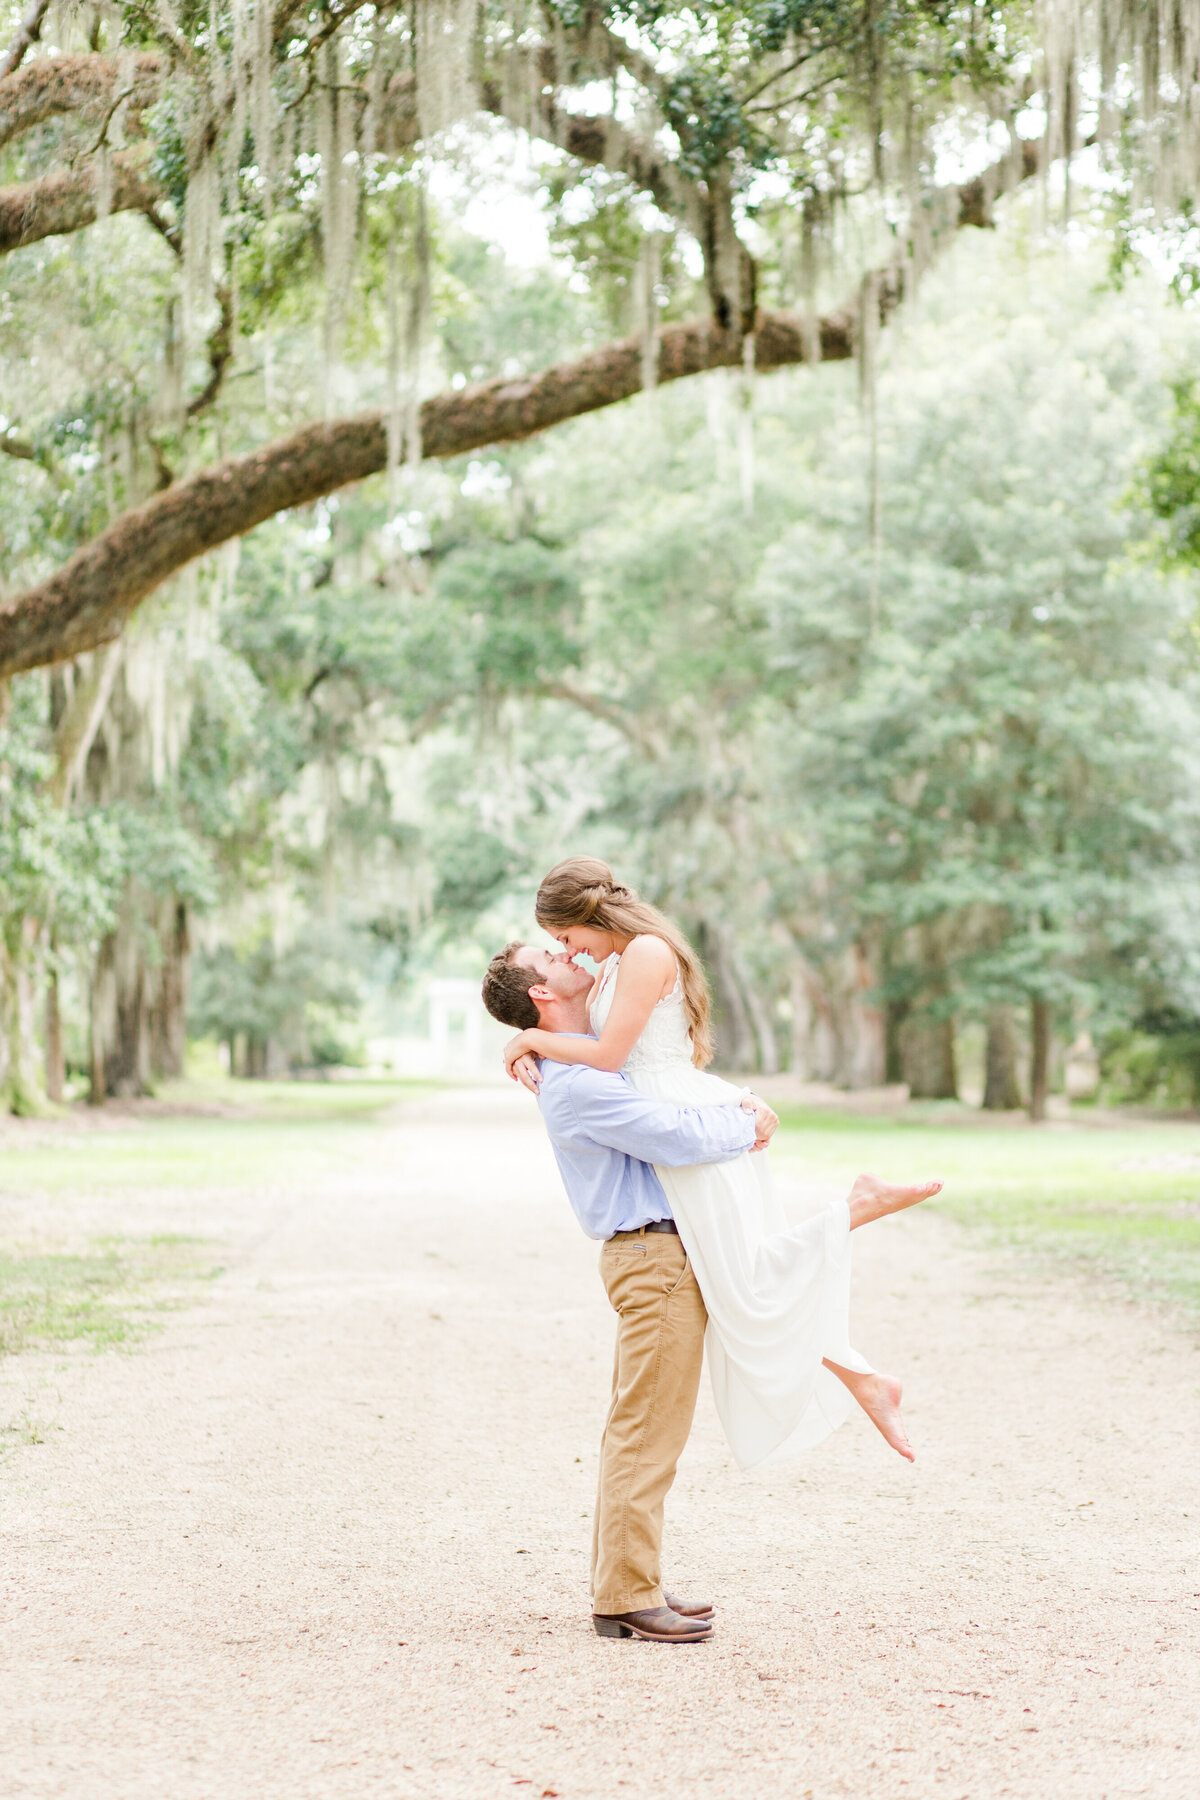 Renee Lorio Photography South Louisiana Wedding Engagement Light Airy Portrait Photographer Photos Southern Clean Colorful9